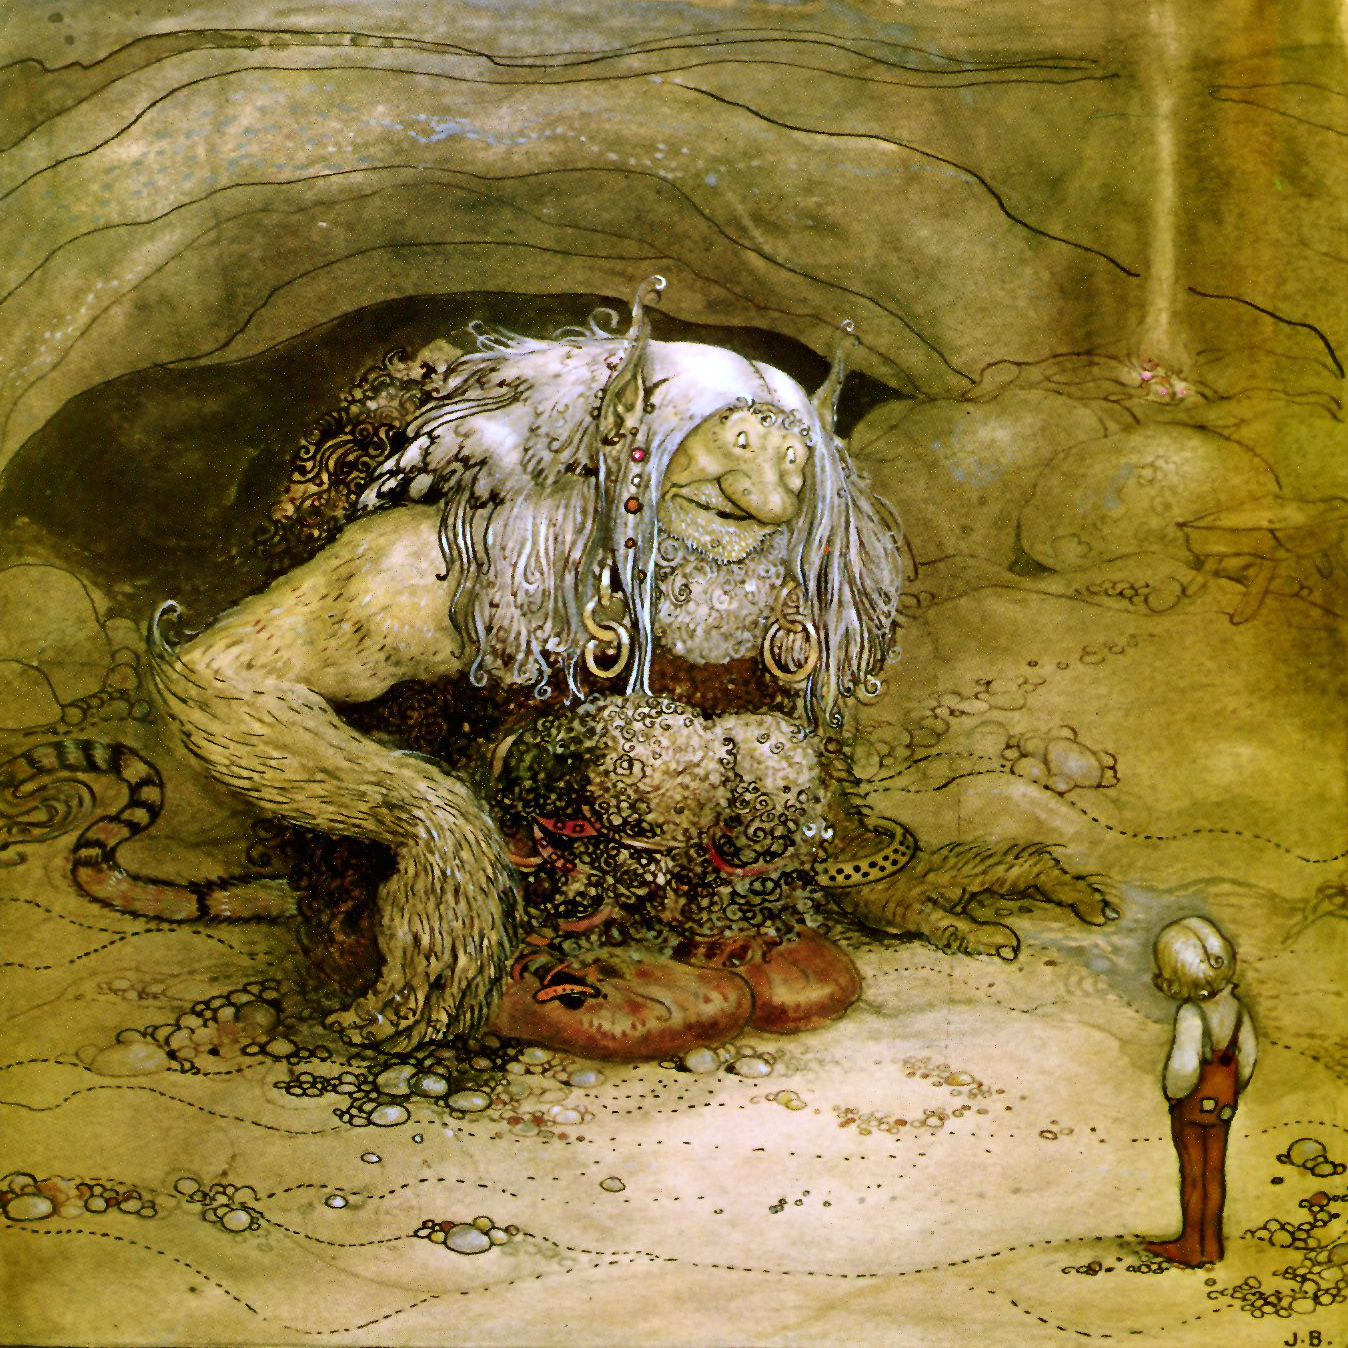 Scandinavian illustration of a large troll speaking to a small child